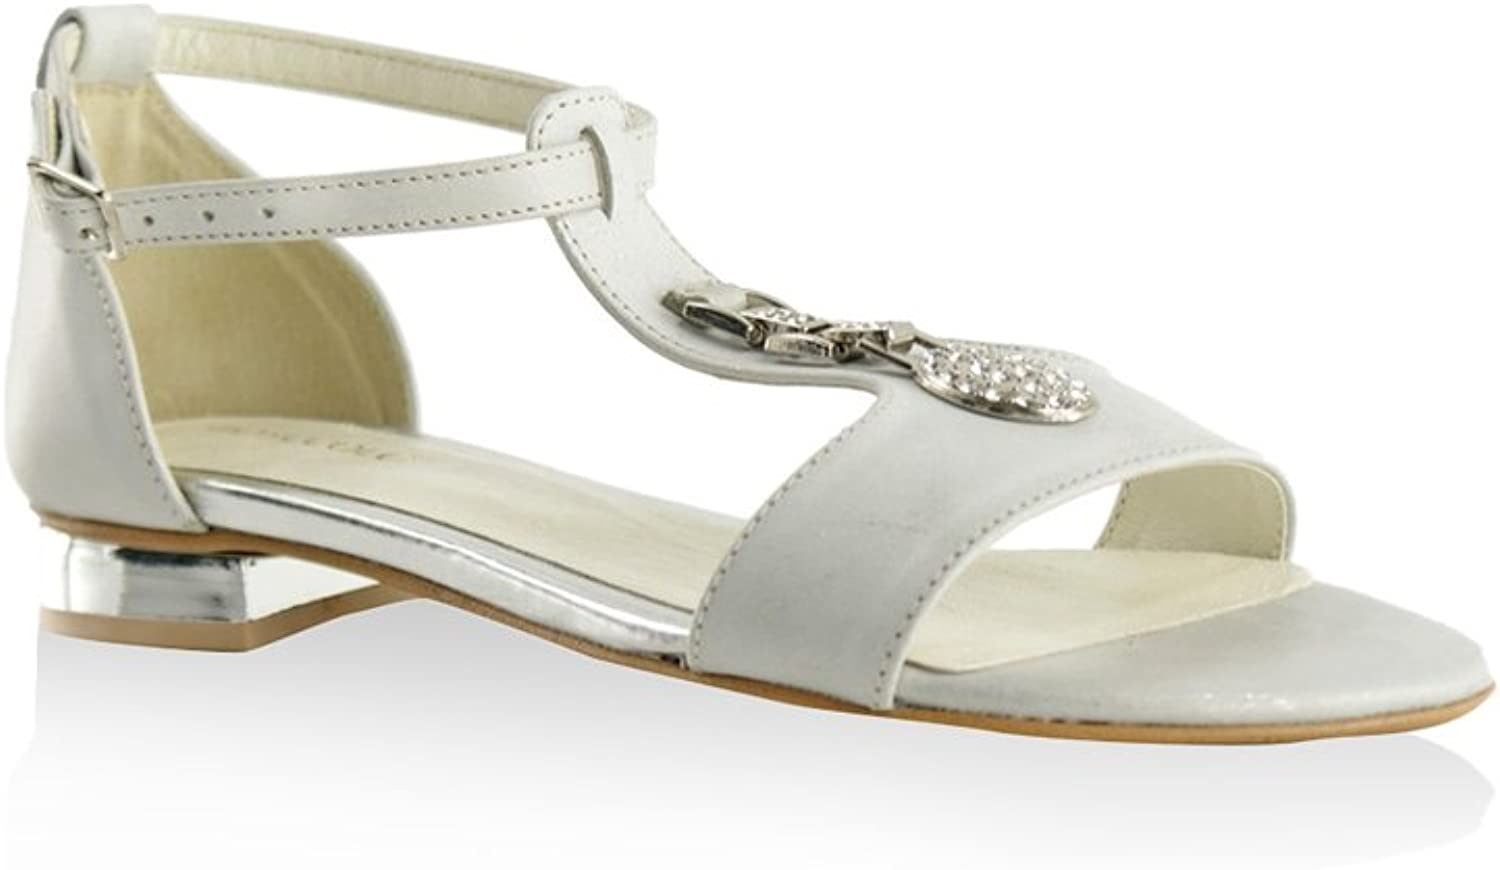 BOSCCOLO 3938-39-40 Sandals With Ornament, Saldalen, Sandales, Leder, Leather, Cuir Cuir  das beste Online-Shop-Angebot